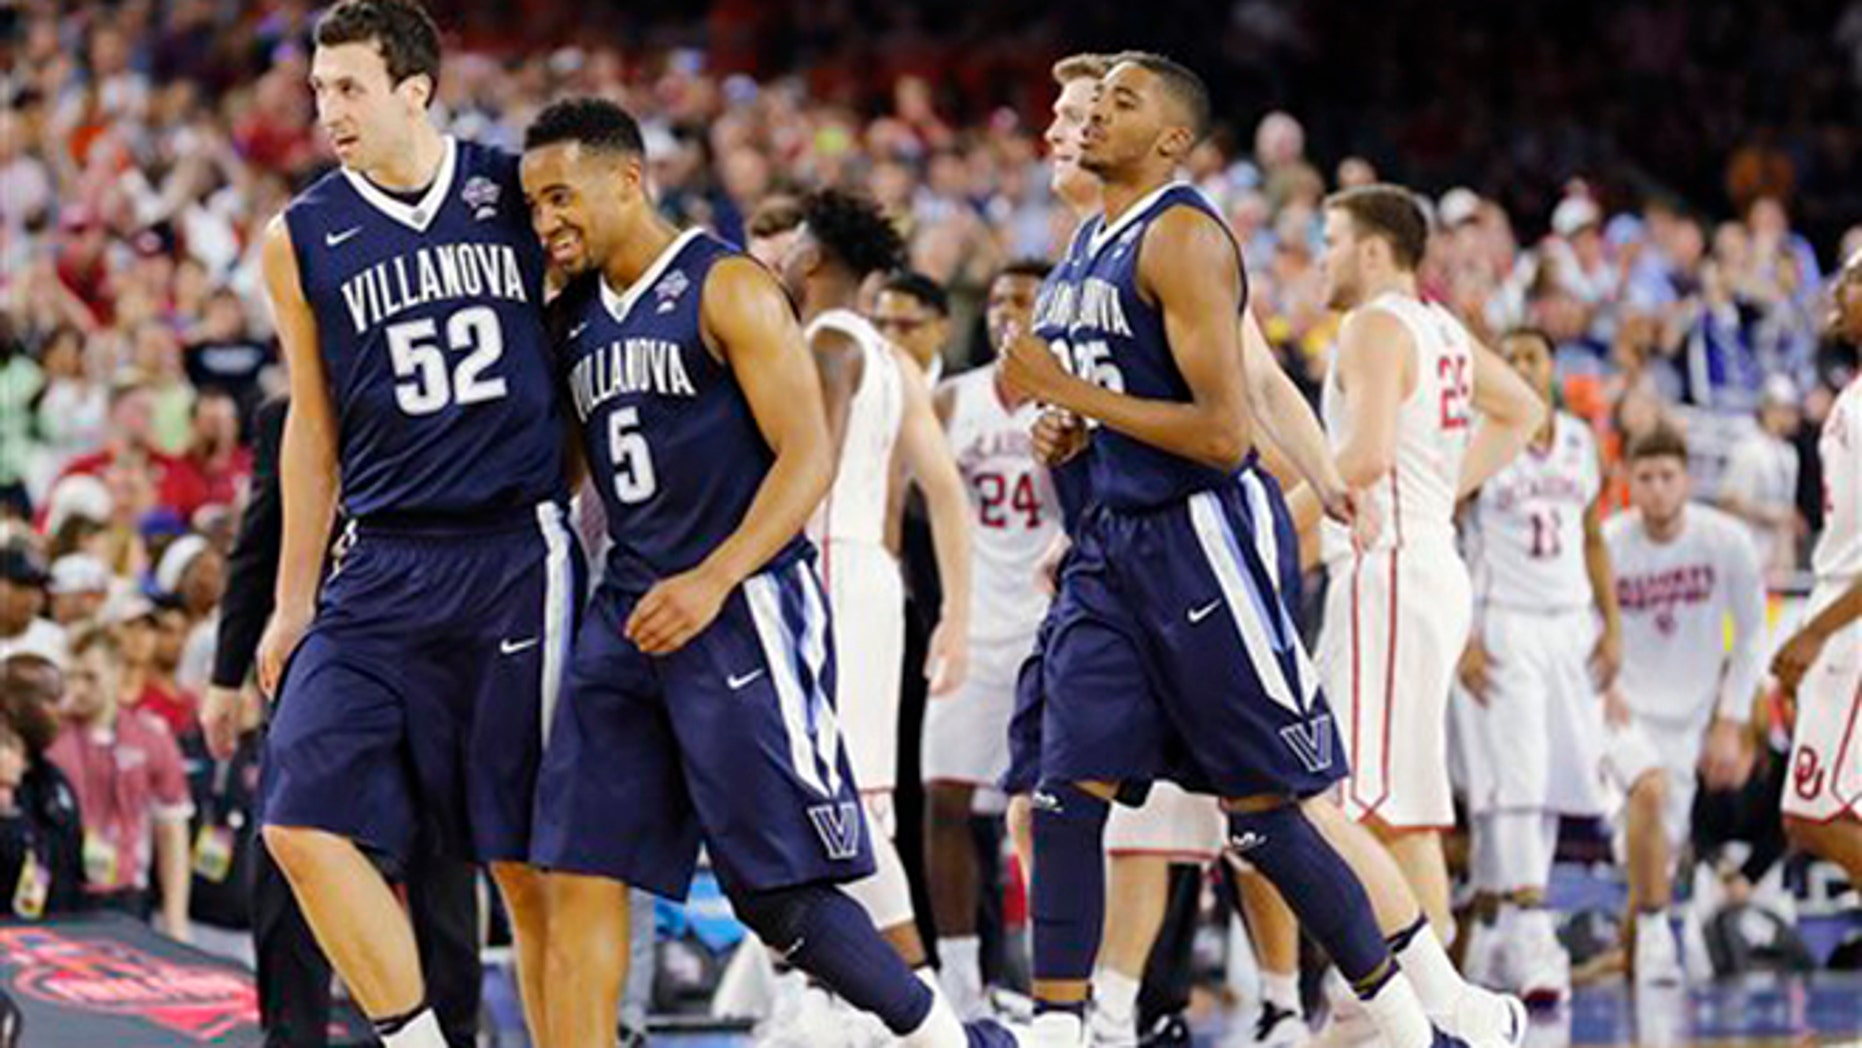 Villanova players including Phil Booth (5) and  Kevin Rafferty (52) walks off the court after an NCAA Final Four tournament college basketball semifinal game against Oklahoma Saturday, April 2, 2016, in Houston. Villanova won 95-51.(AP Photo/Kiichiro Sato)